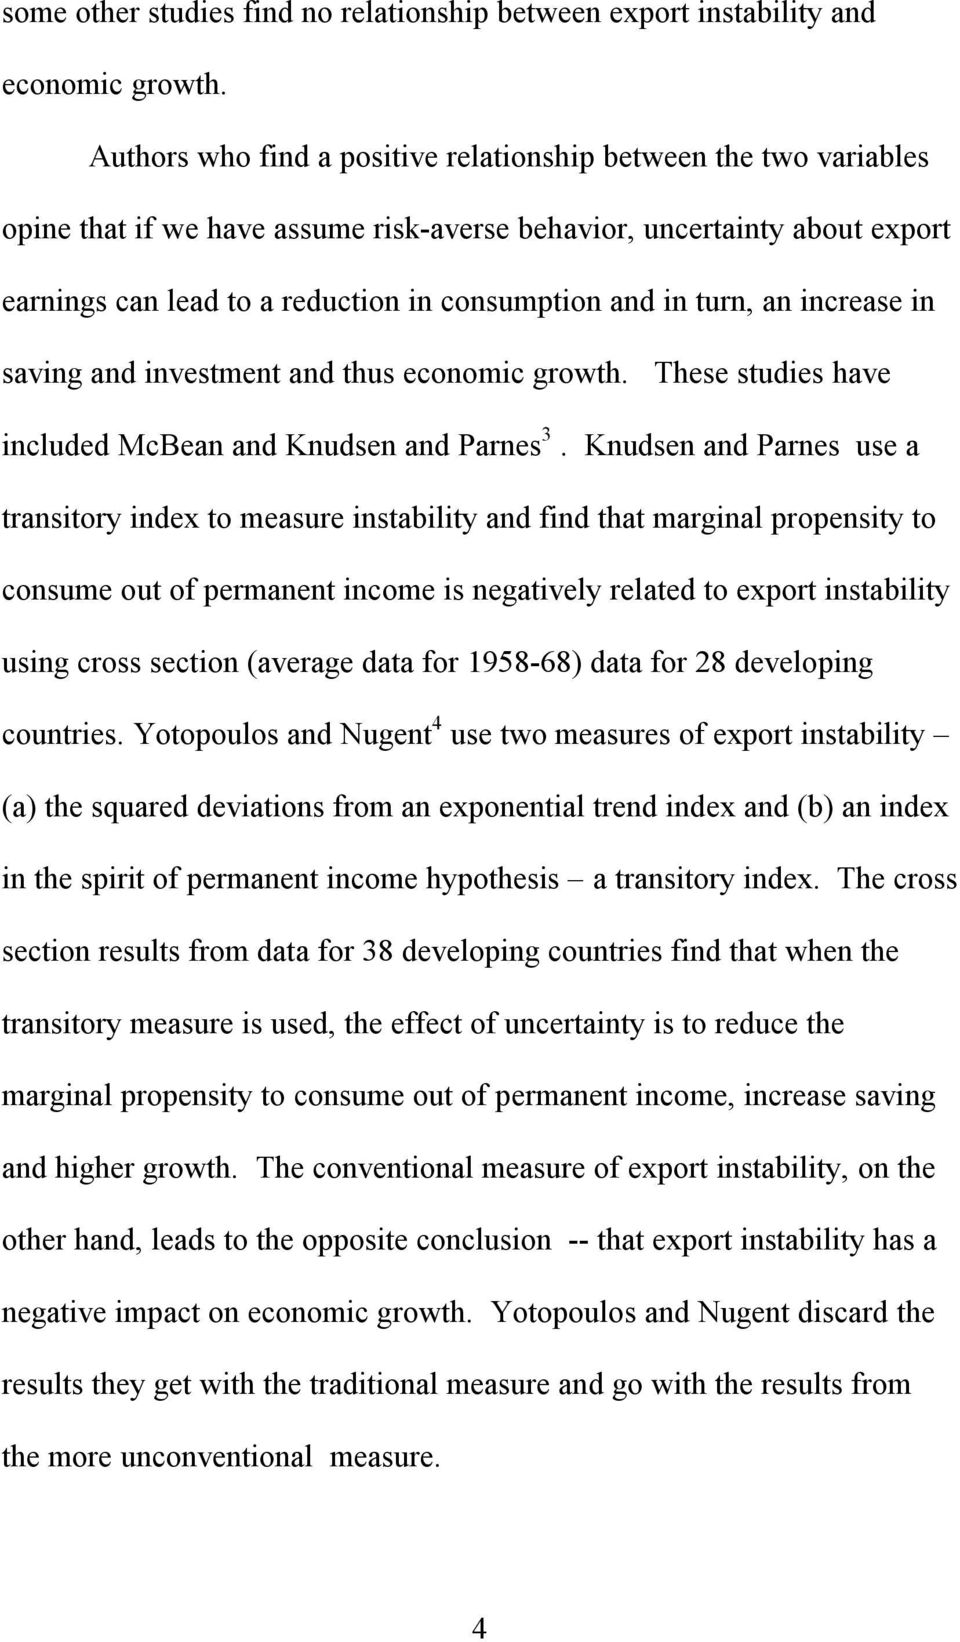 turn, an increase in saving and investment and thus economic growth. These studies have included McBean and Knudsen and Parnes 3.